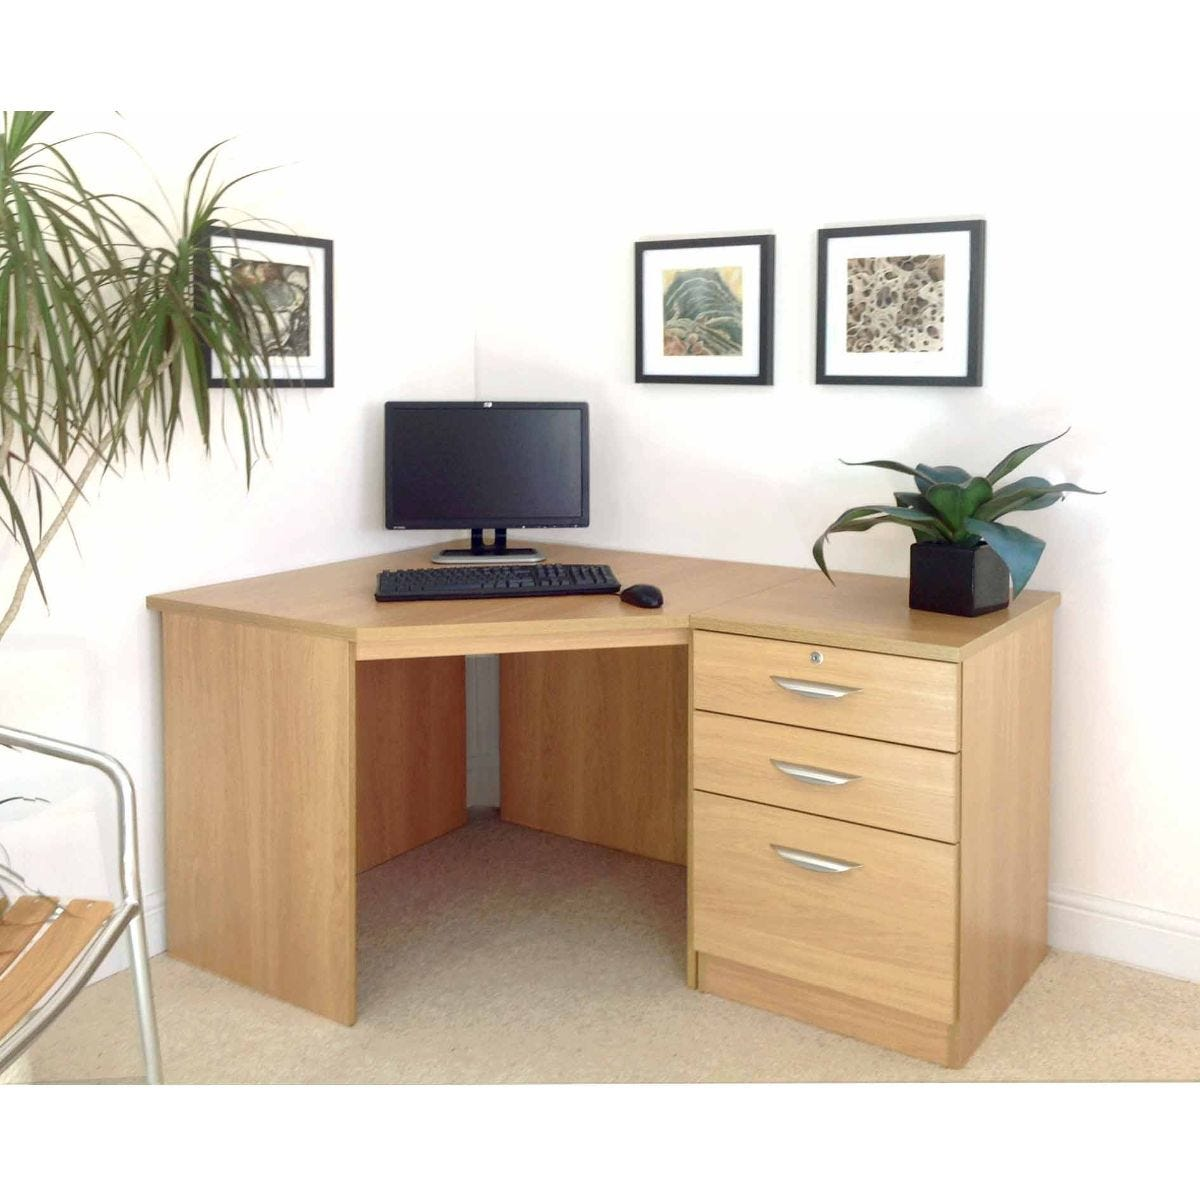 R White Home Office Corner Desk with Three Drawers, Classic Oak